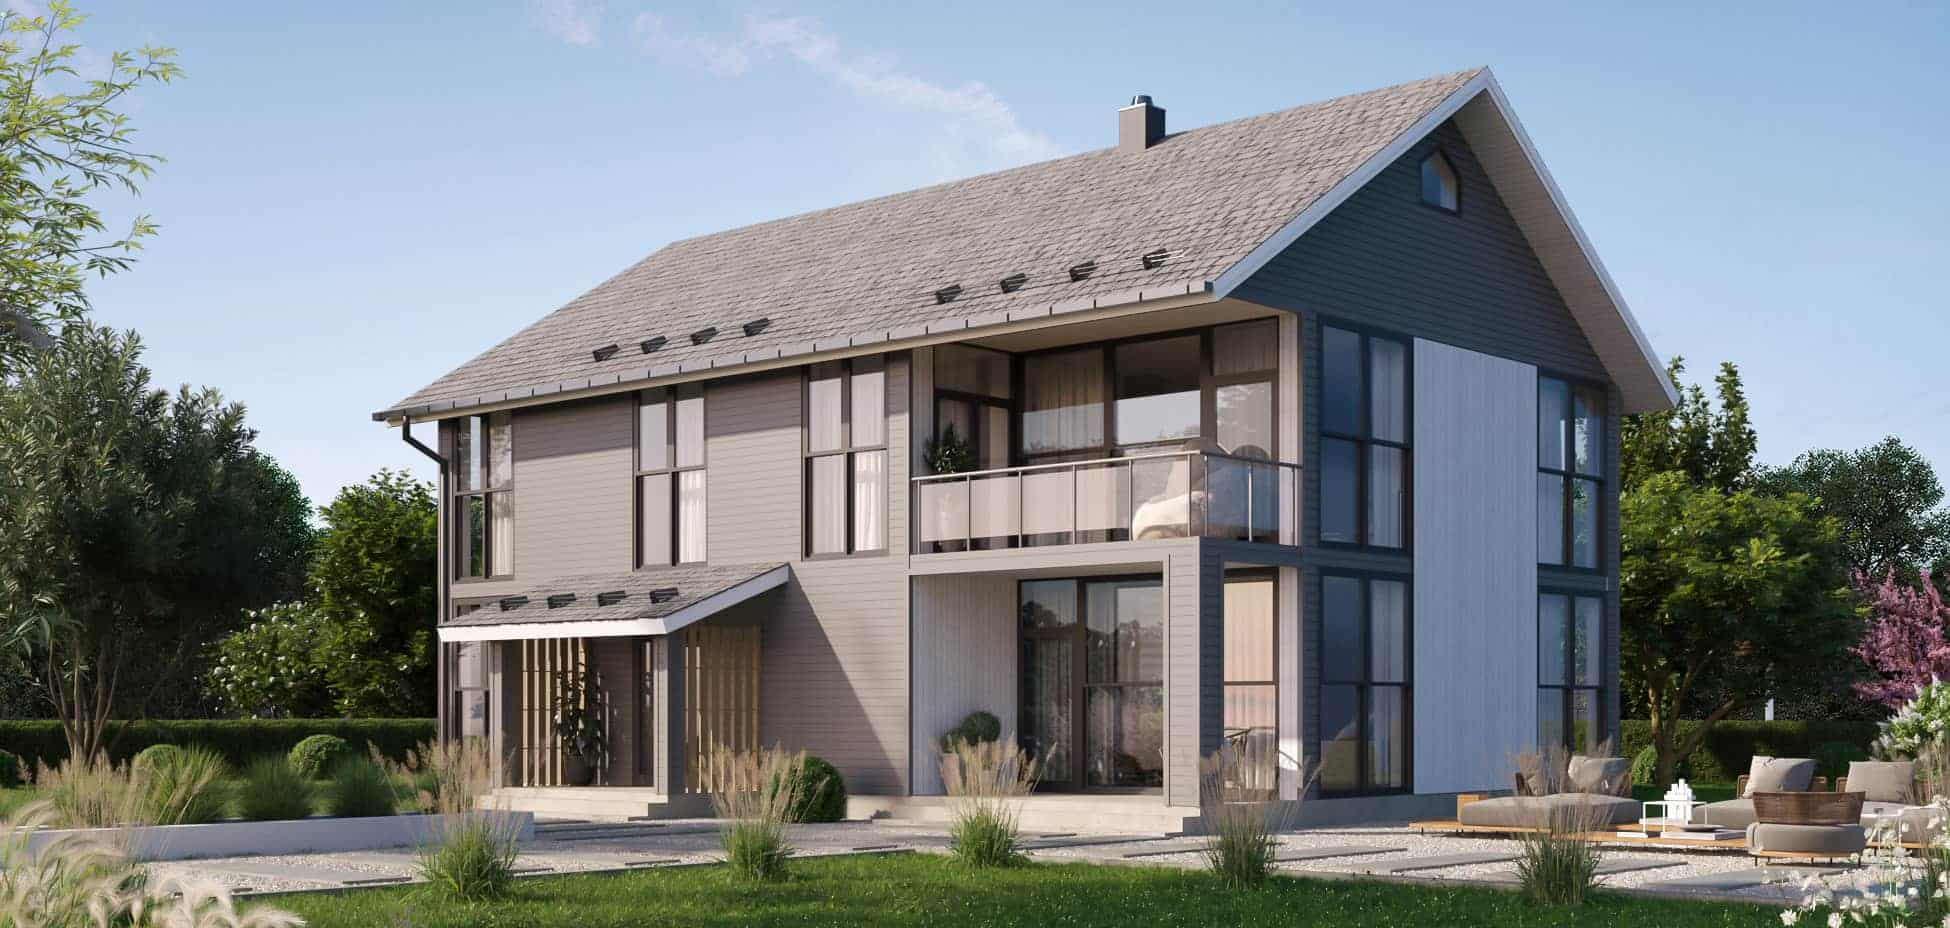 Log & Prefabricated houses directly from producer | Palmatin.com